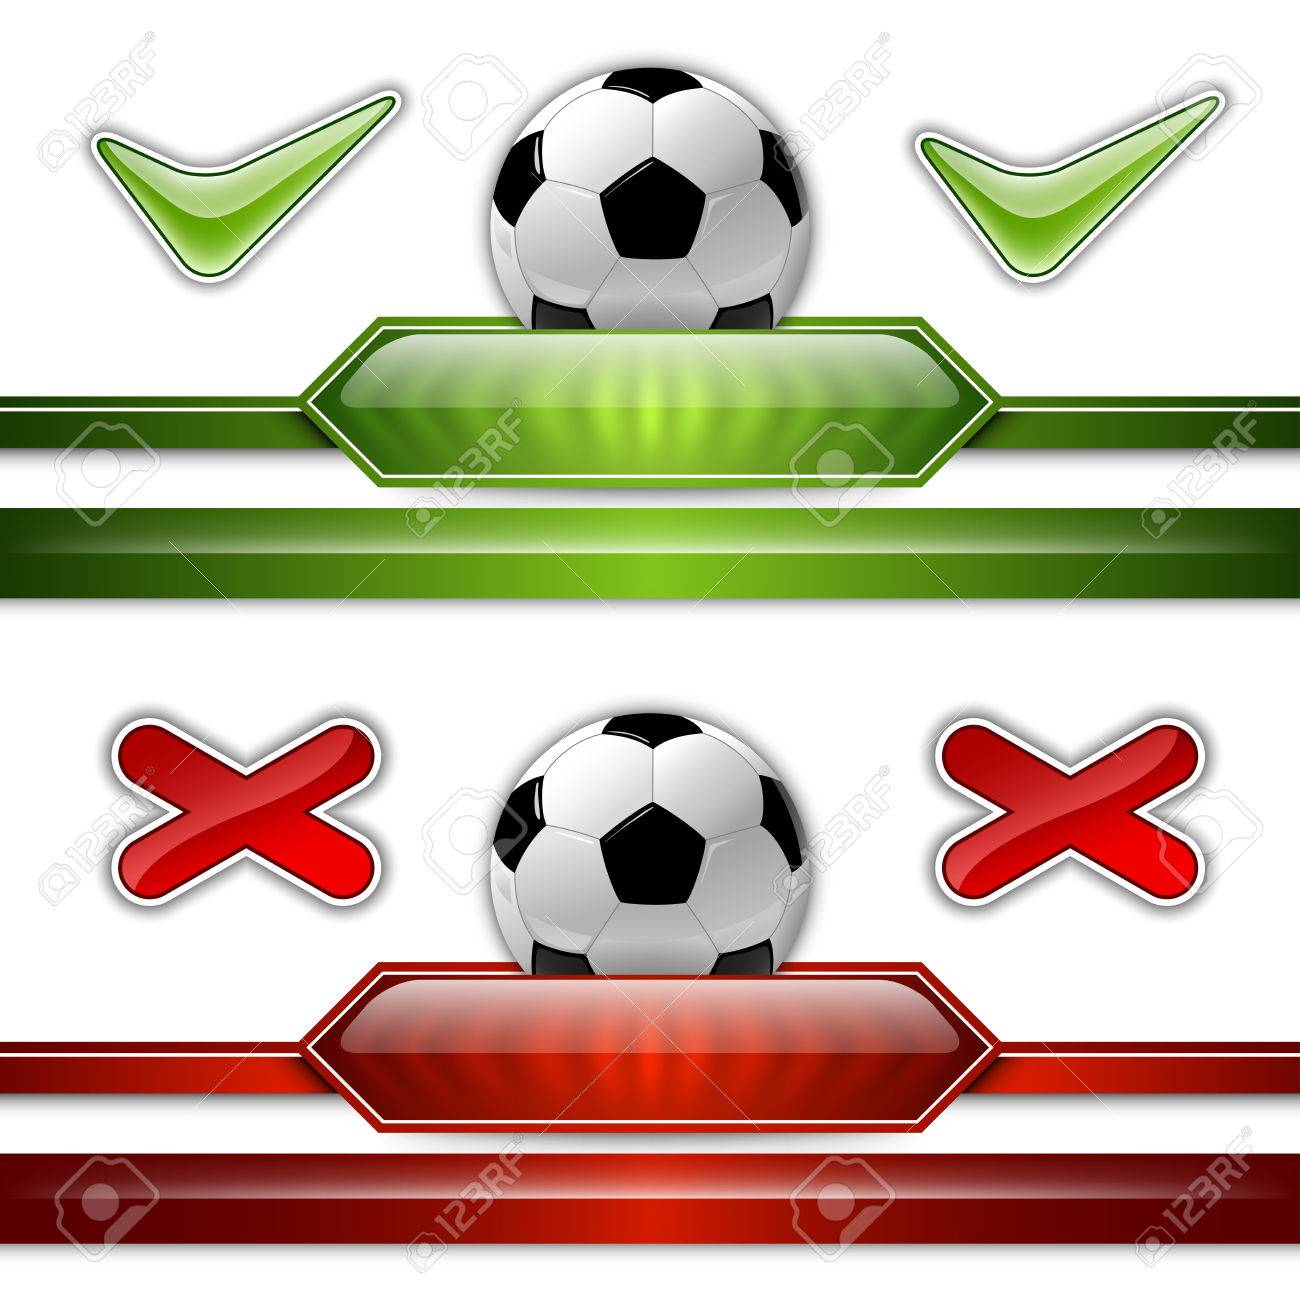 Soccer symbol. Football with green button for score information. - 27144021